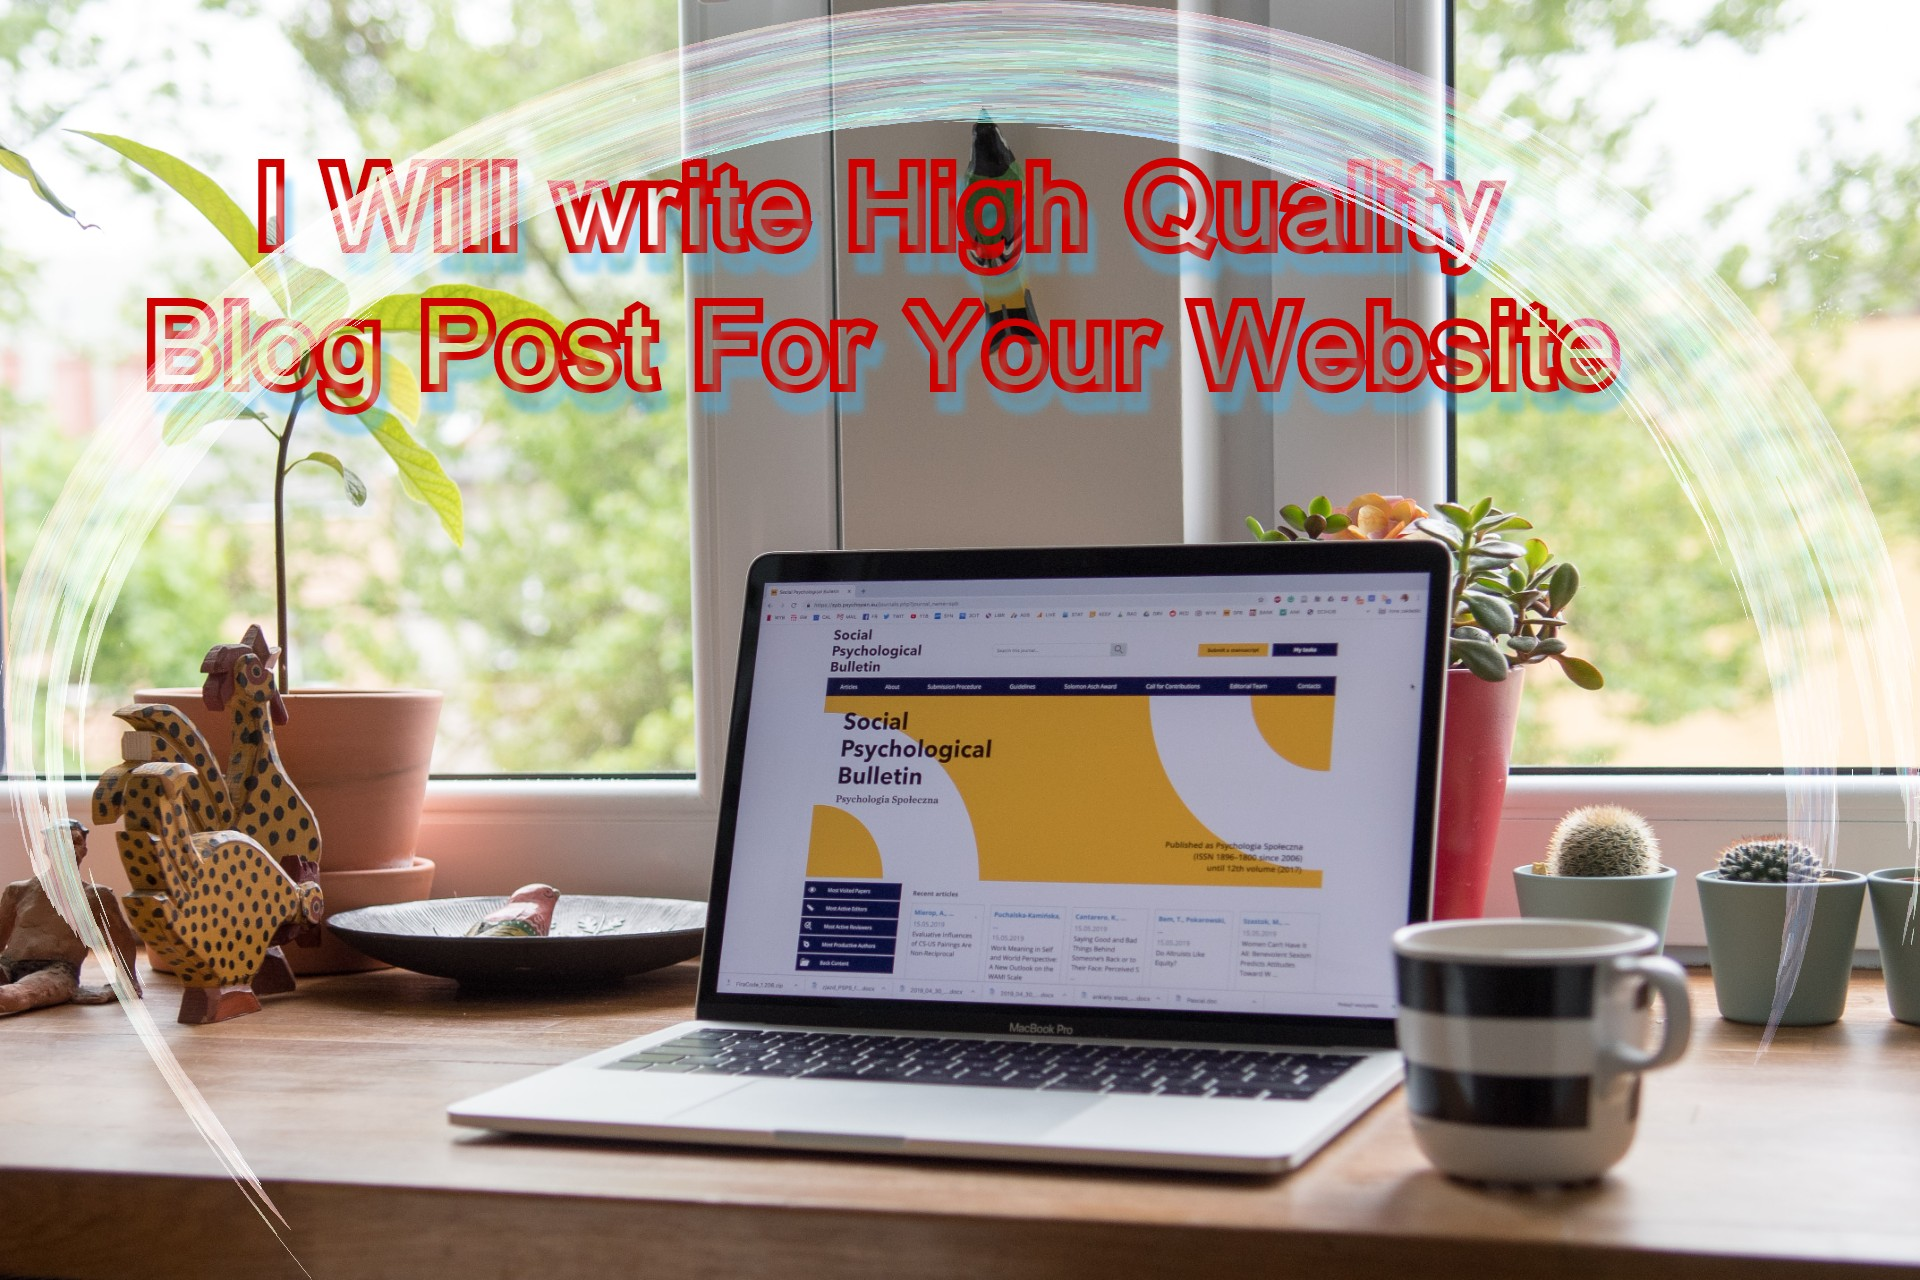 I will write high quality articles and blog posts